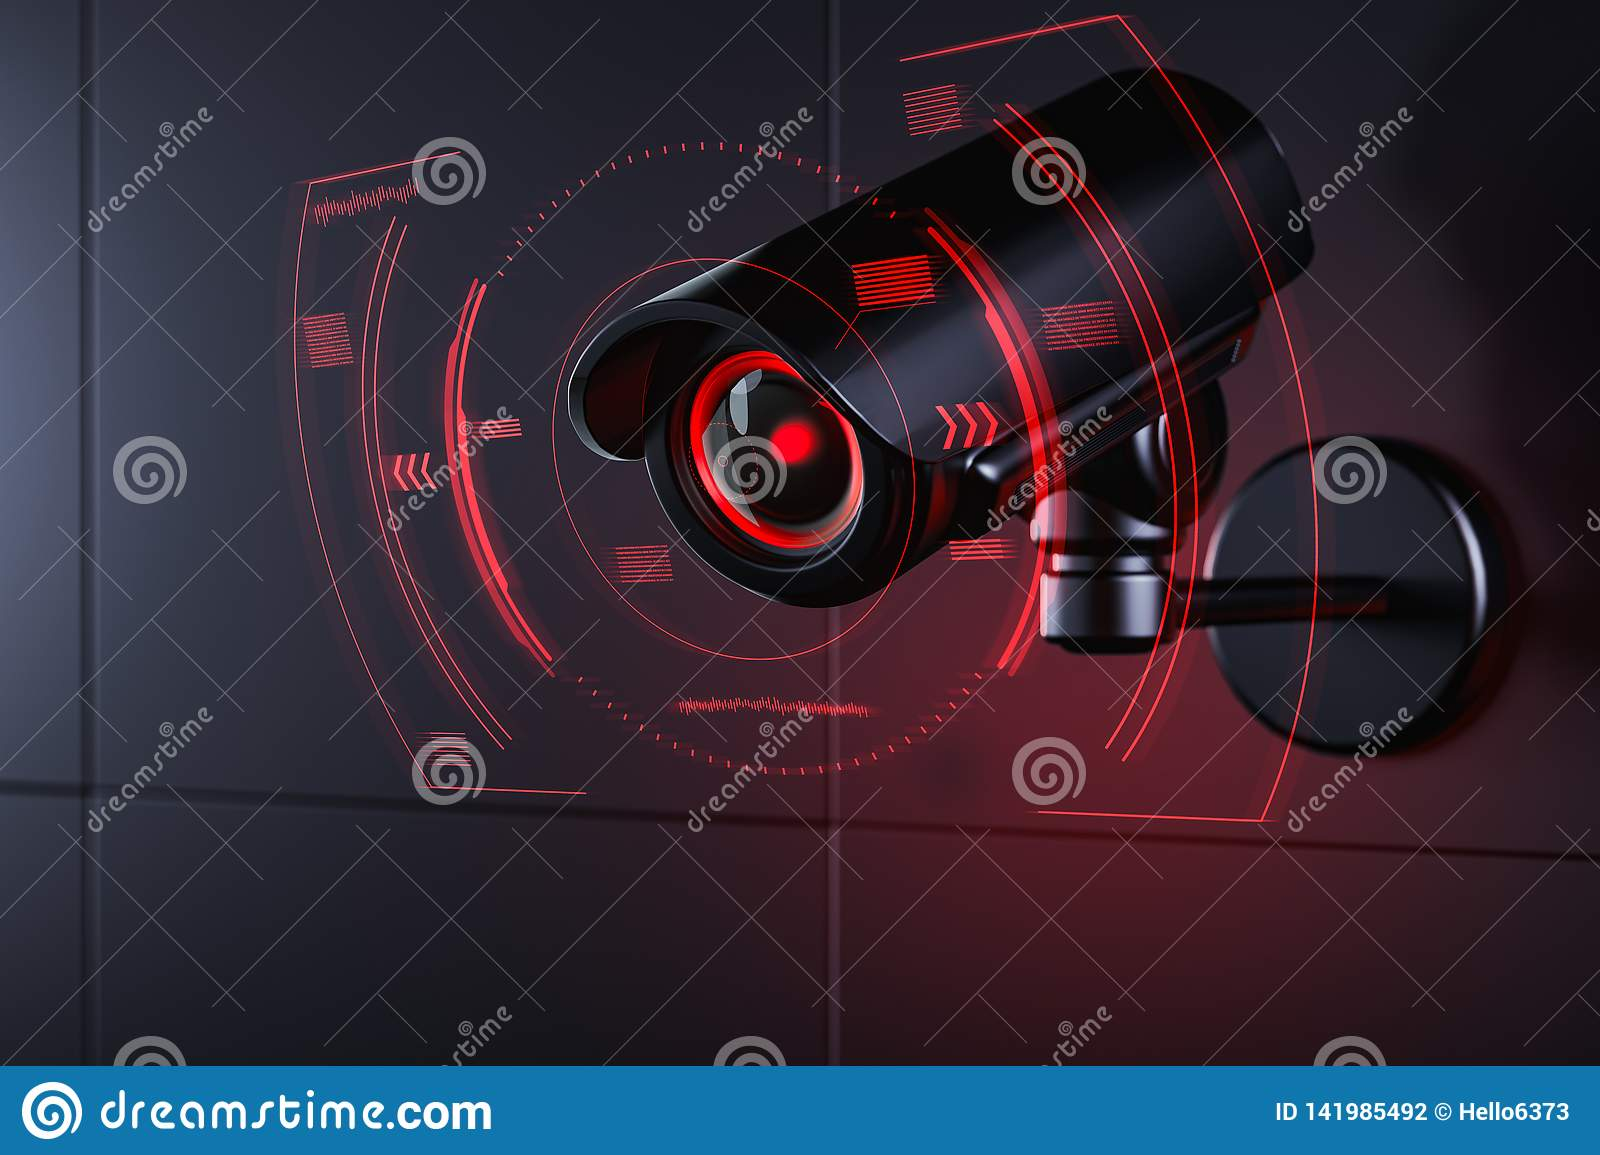 Cctv is checking information about citizen in surveillance security system, social credit system concept. 3D rendering